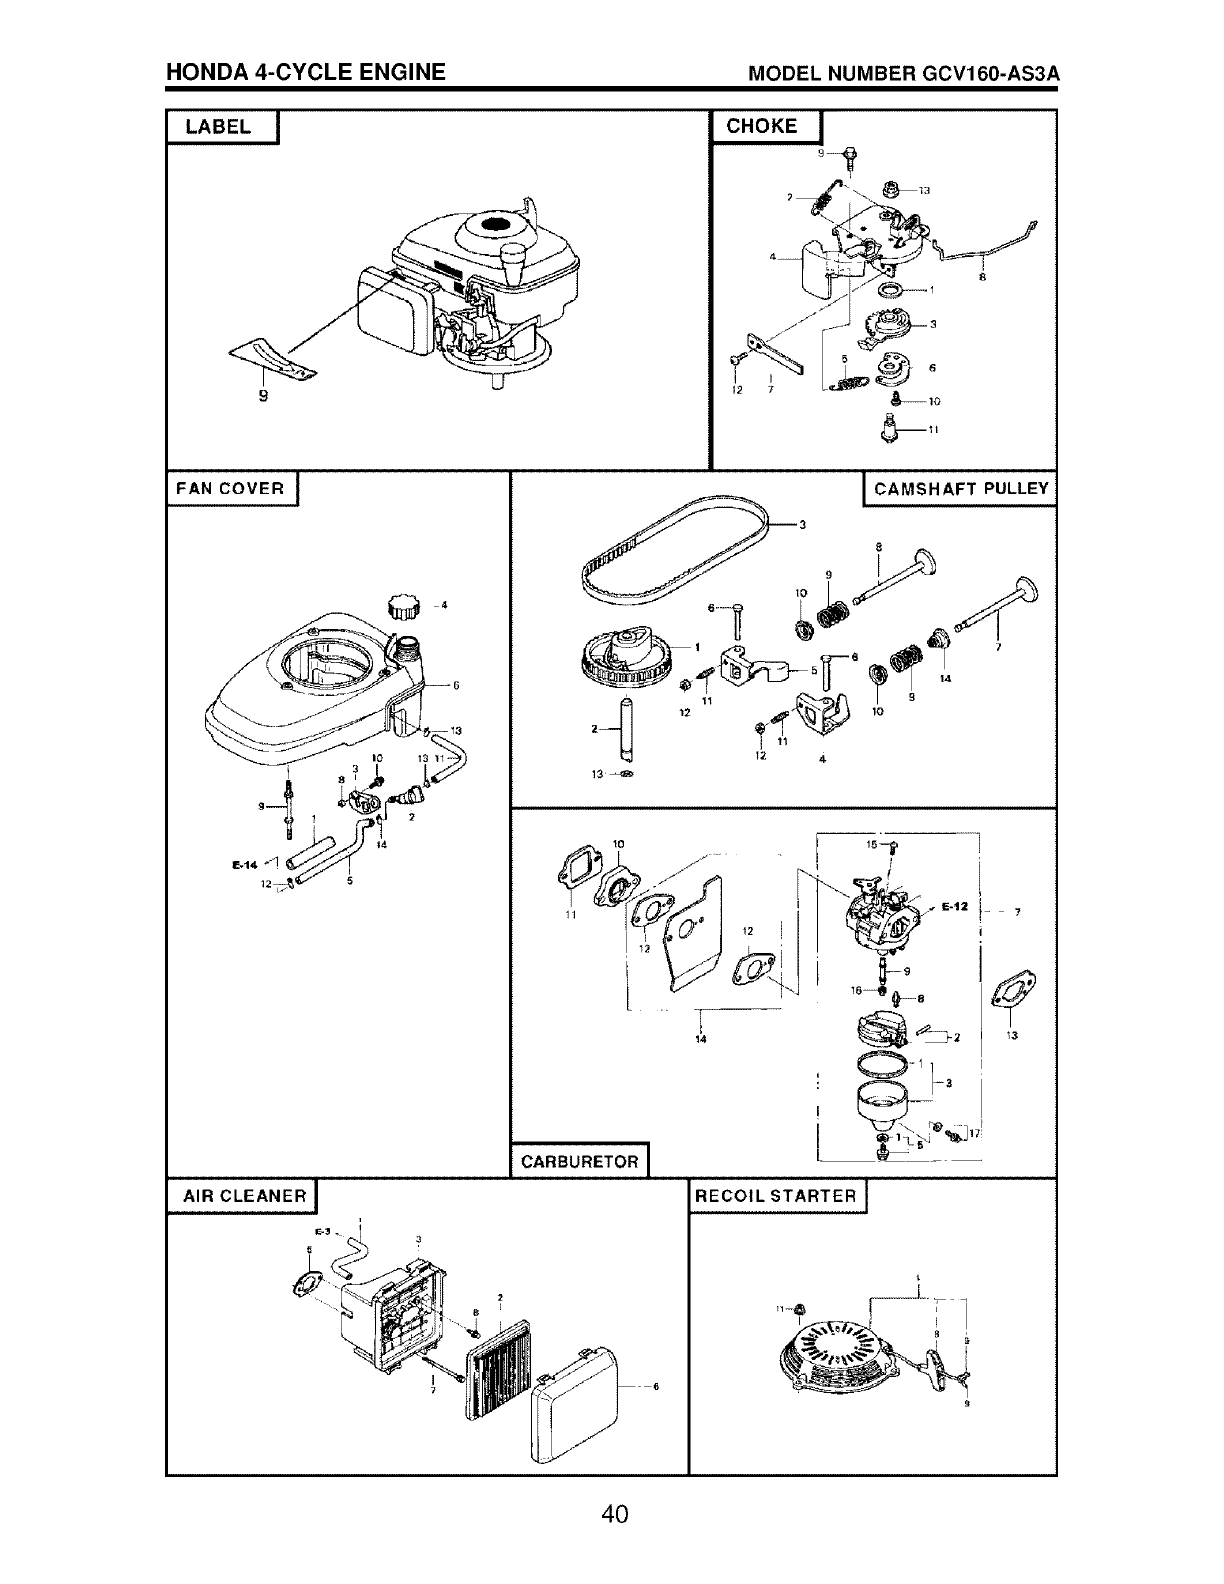 Craftsman 917376093 User Manual Mower Manuals And Guides L0605337 Honda Gc160 5 0 Engine Spring Diagram 4 Cycle Model Number Gcv160 As3a